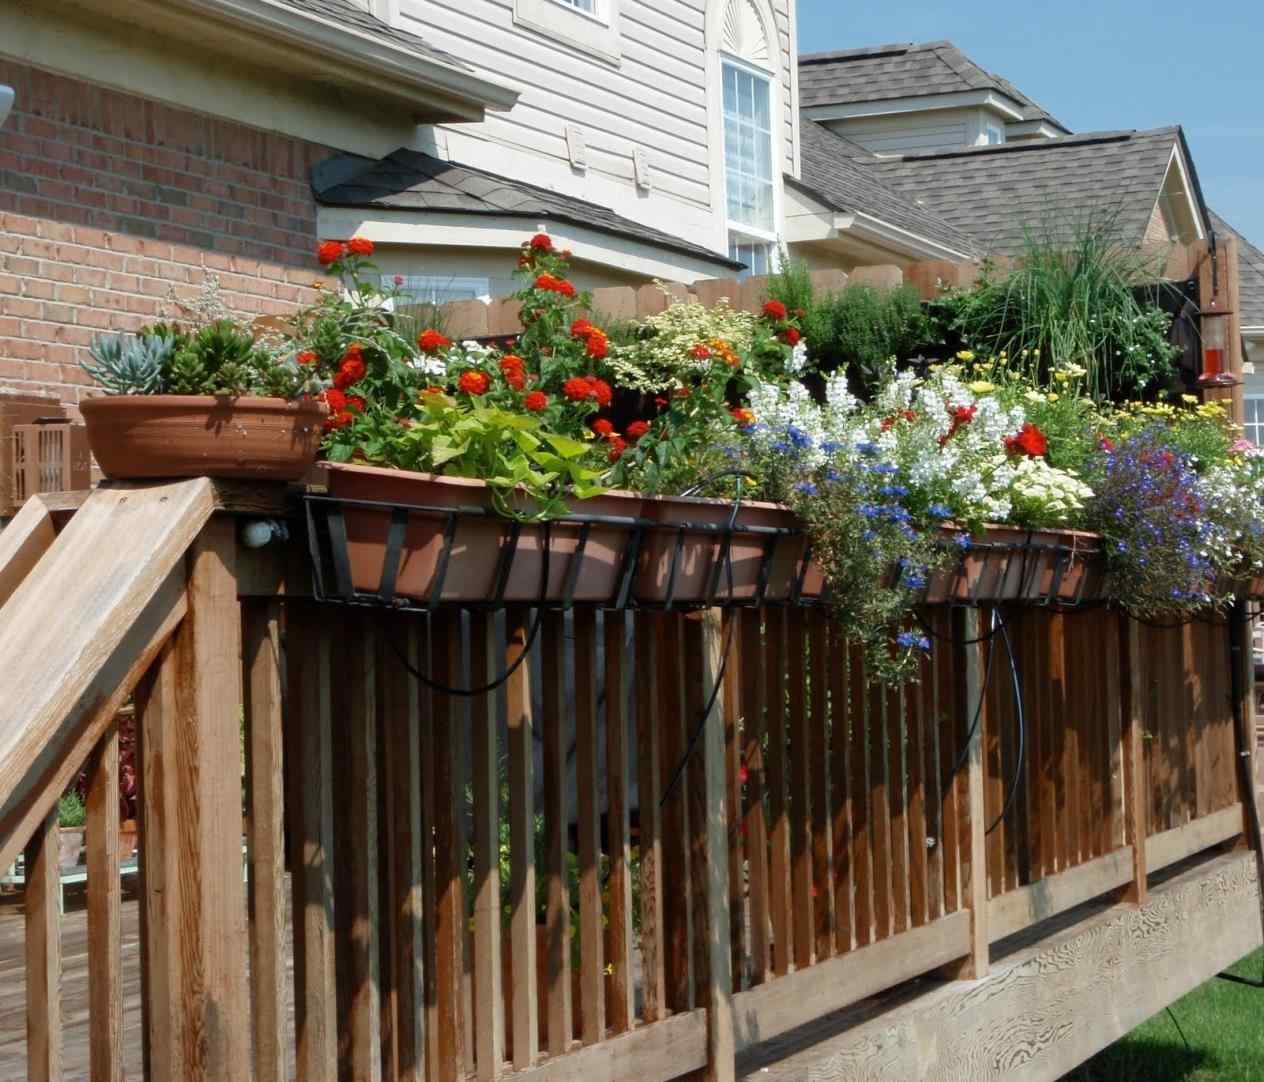 Modern Railing Planters Custom By Rushton: Planters For Deck Rails €� Decks Ideas